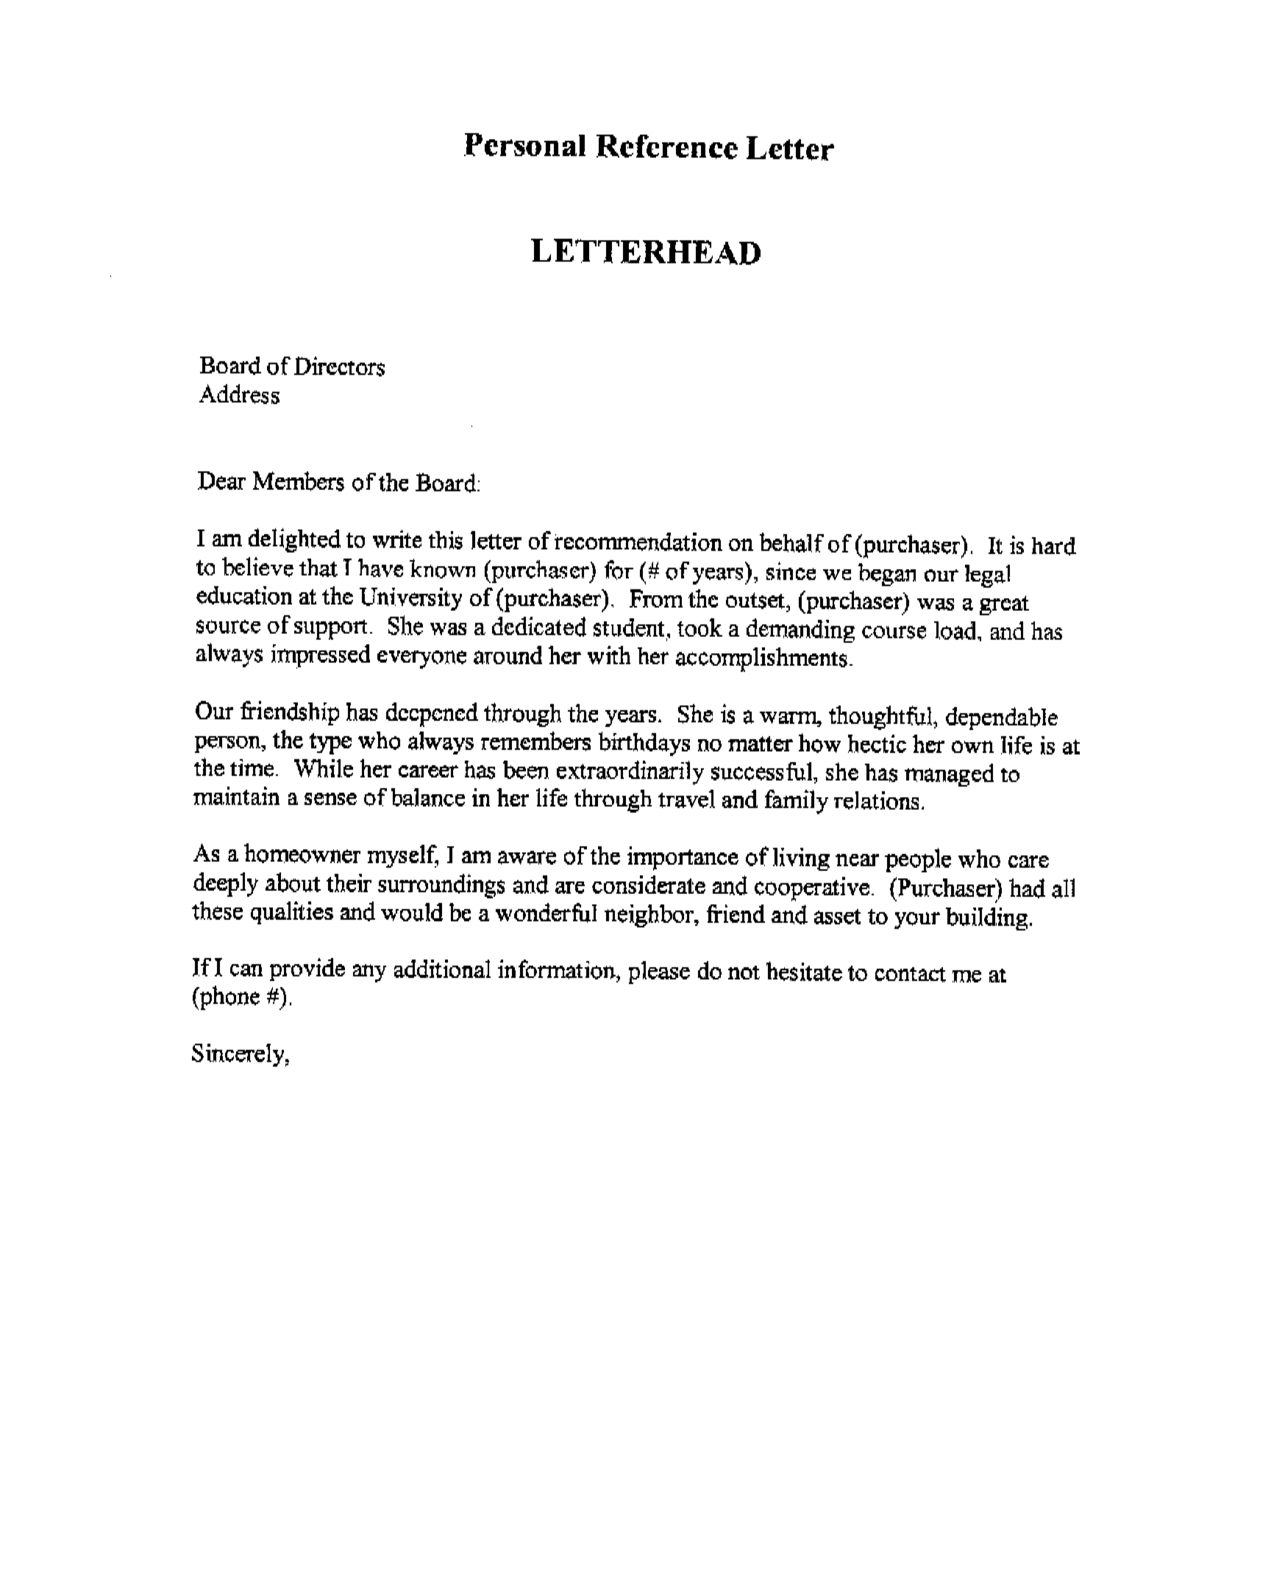 Professional Recommendation Letter This is an example of a – Sample Professional Letter of Recommendation for Job